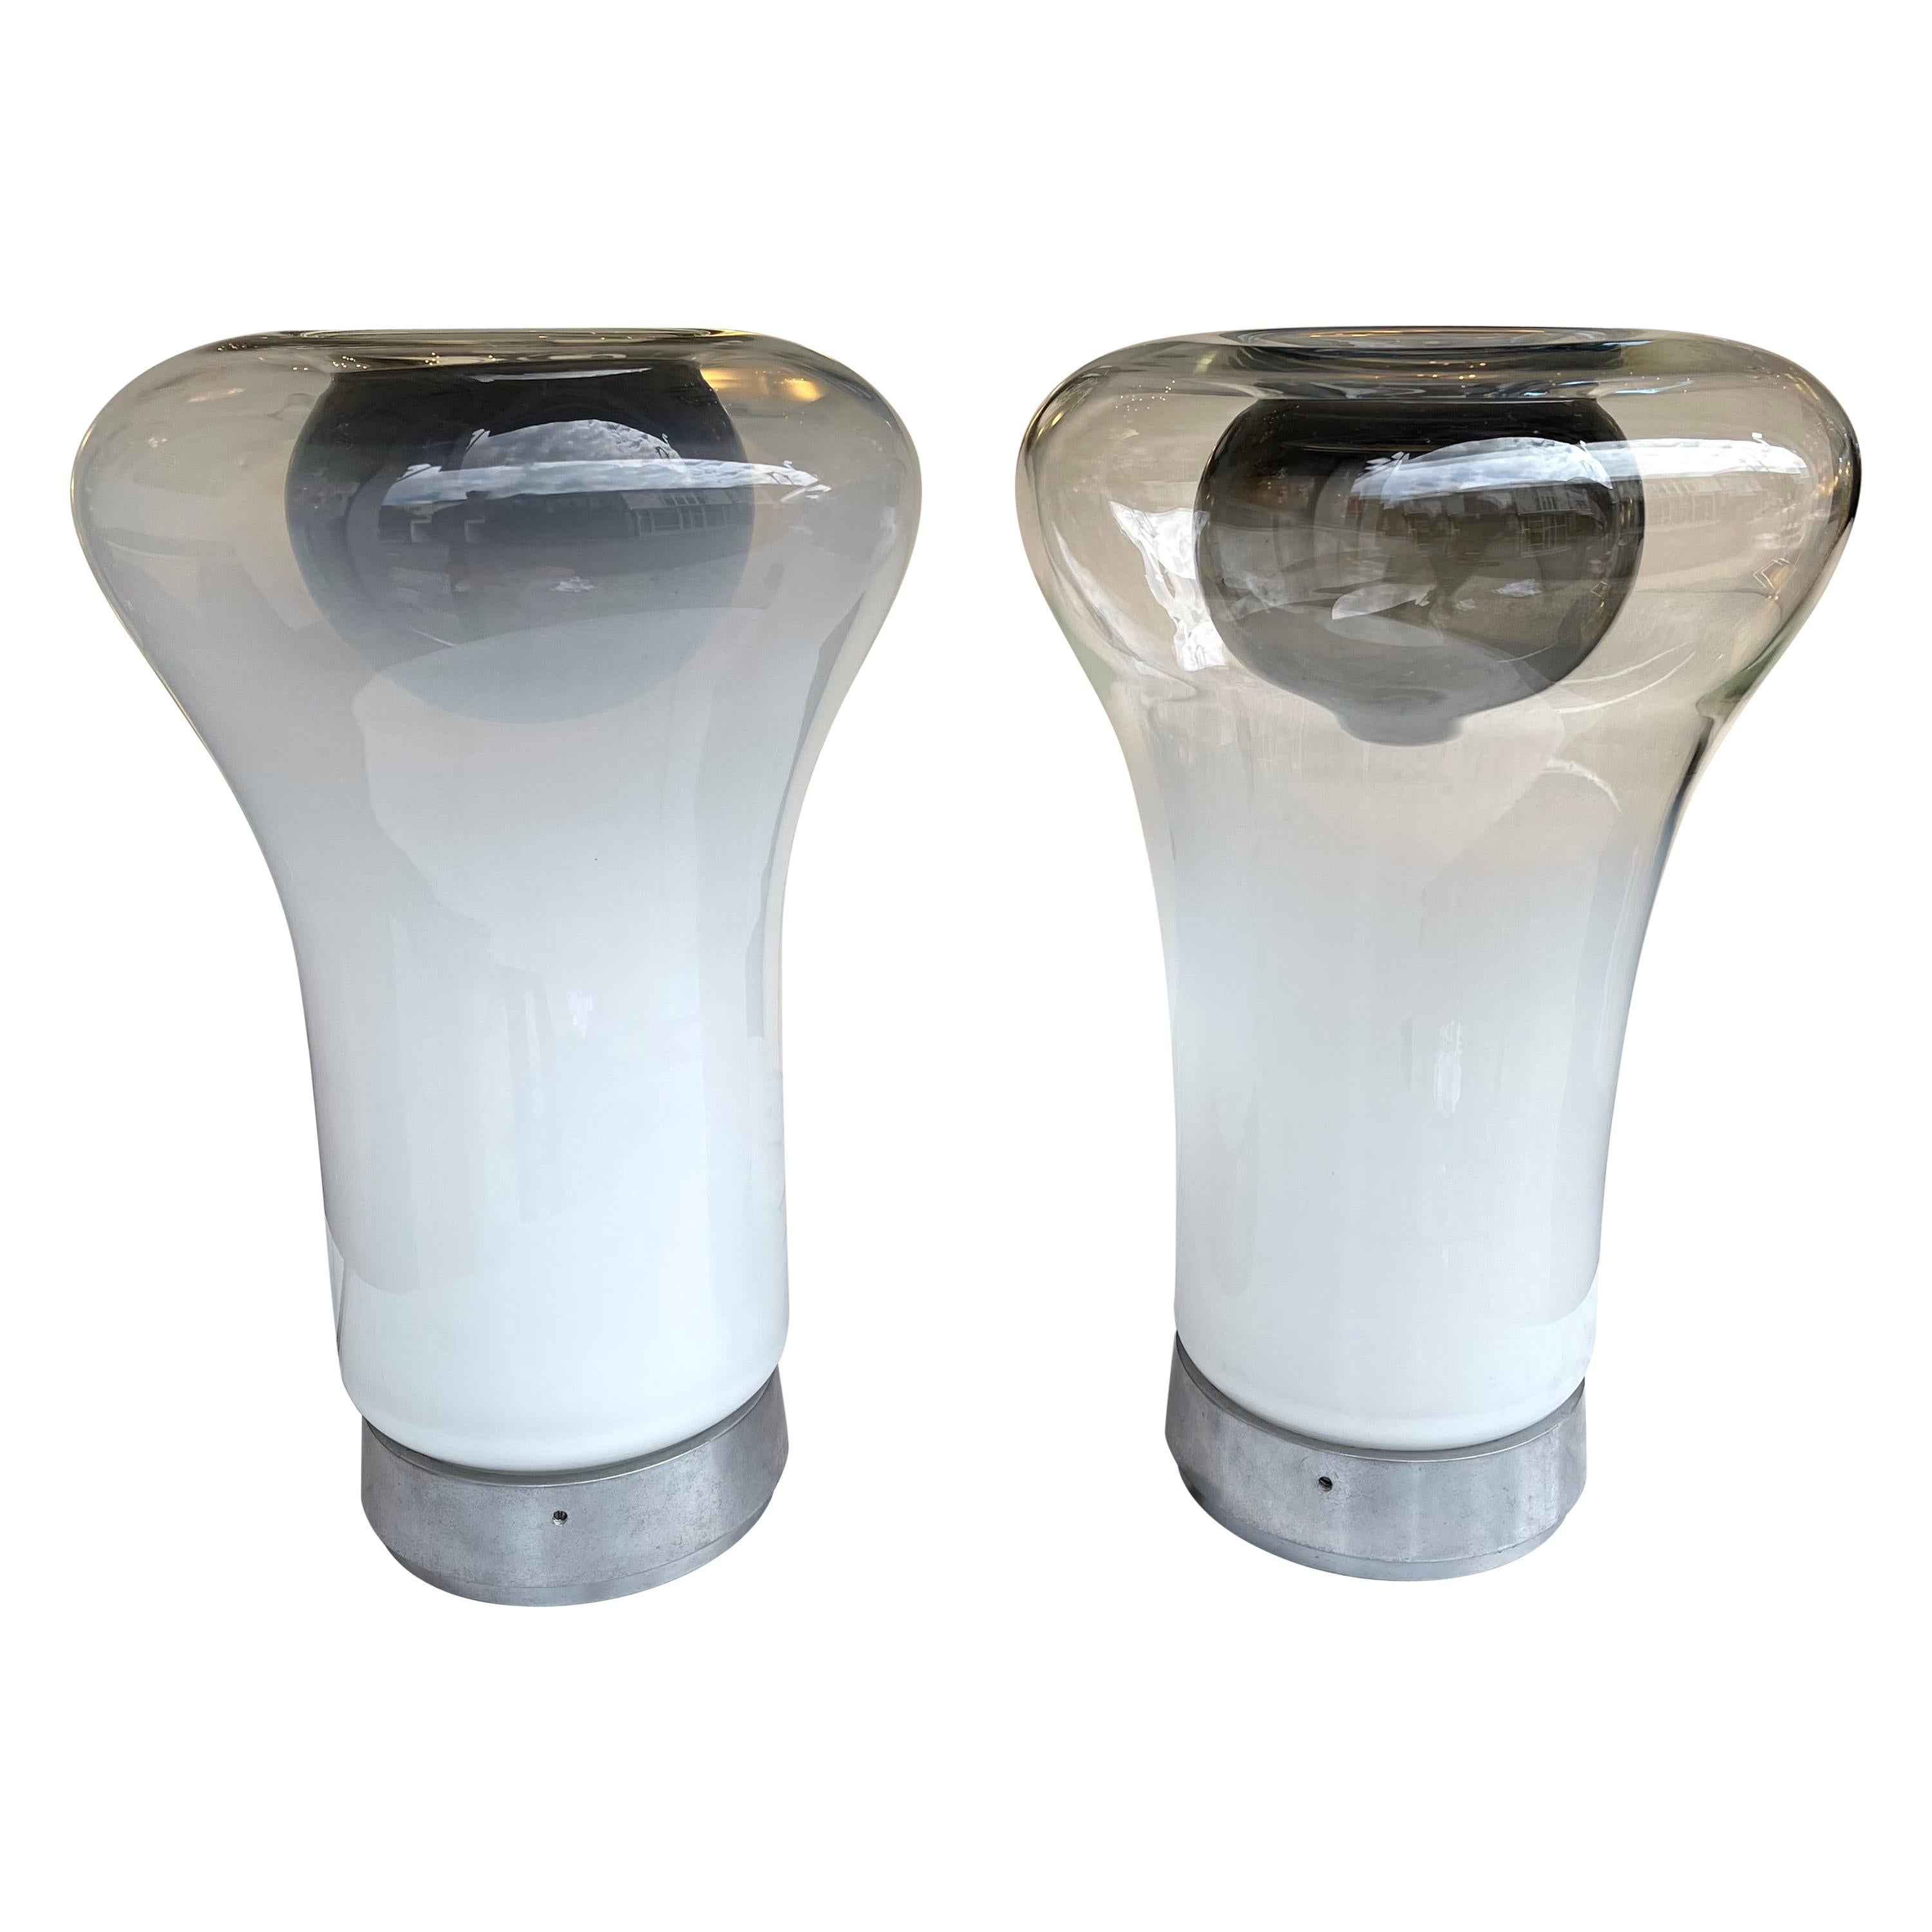 Pair of Saffo Lamps Murano Glass by Angelo Mangiarotti for Artemide, Italy, 1970